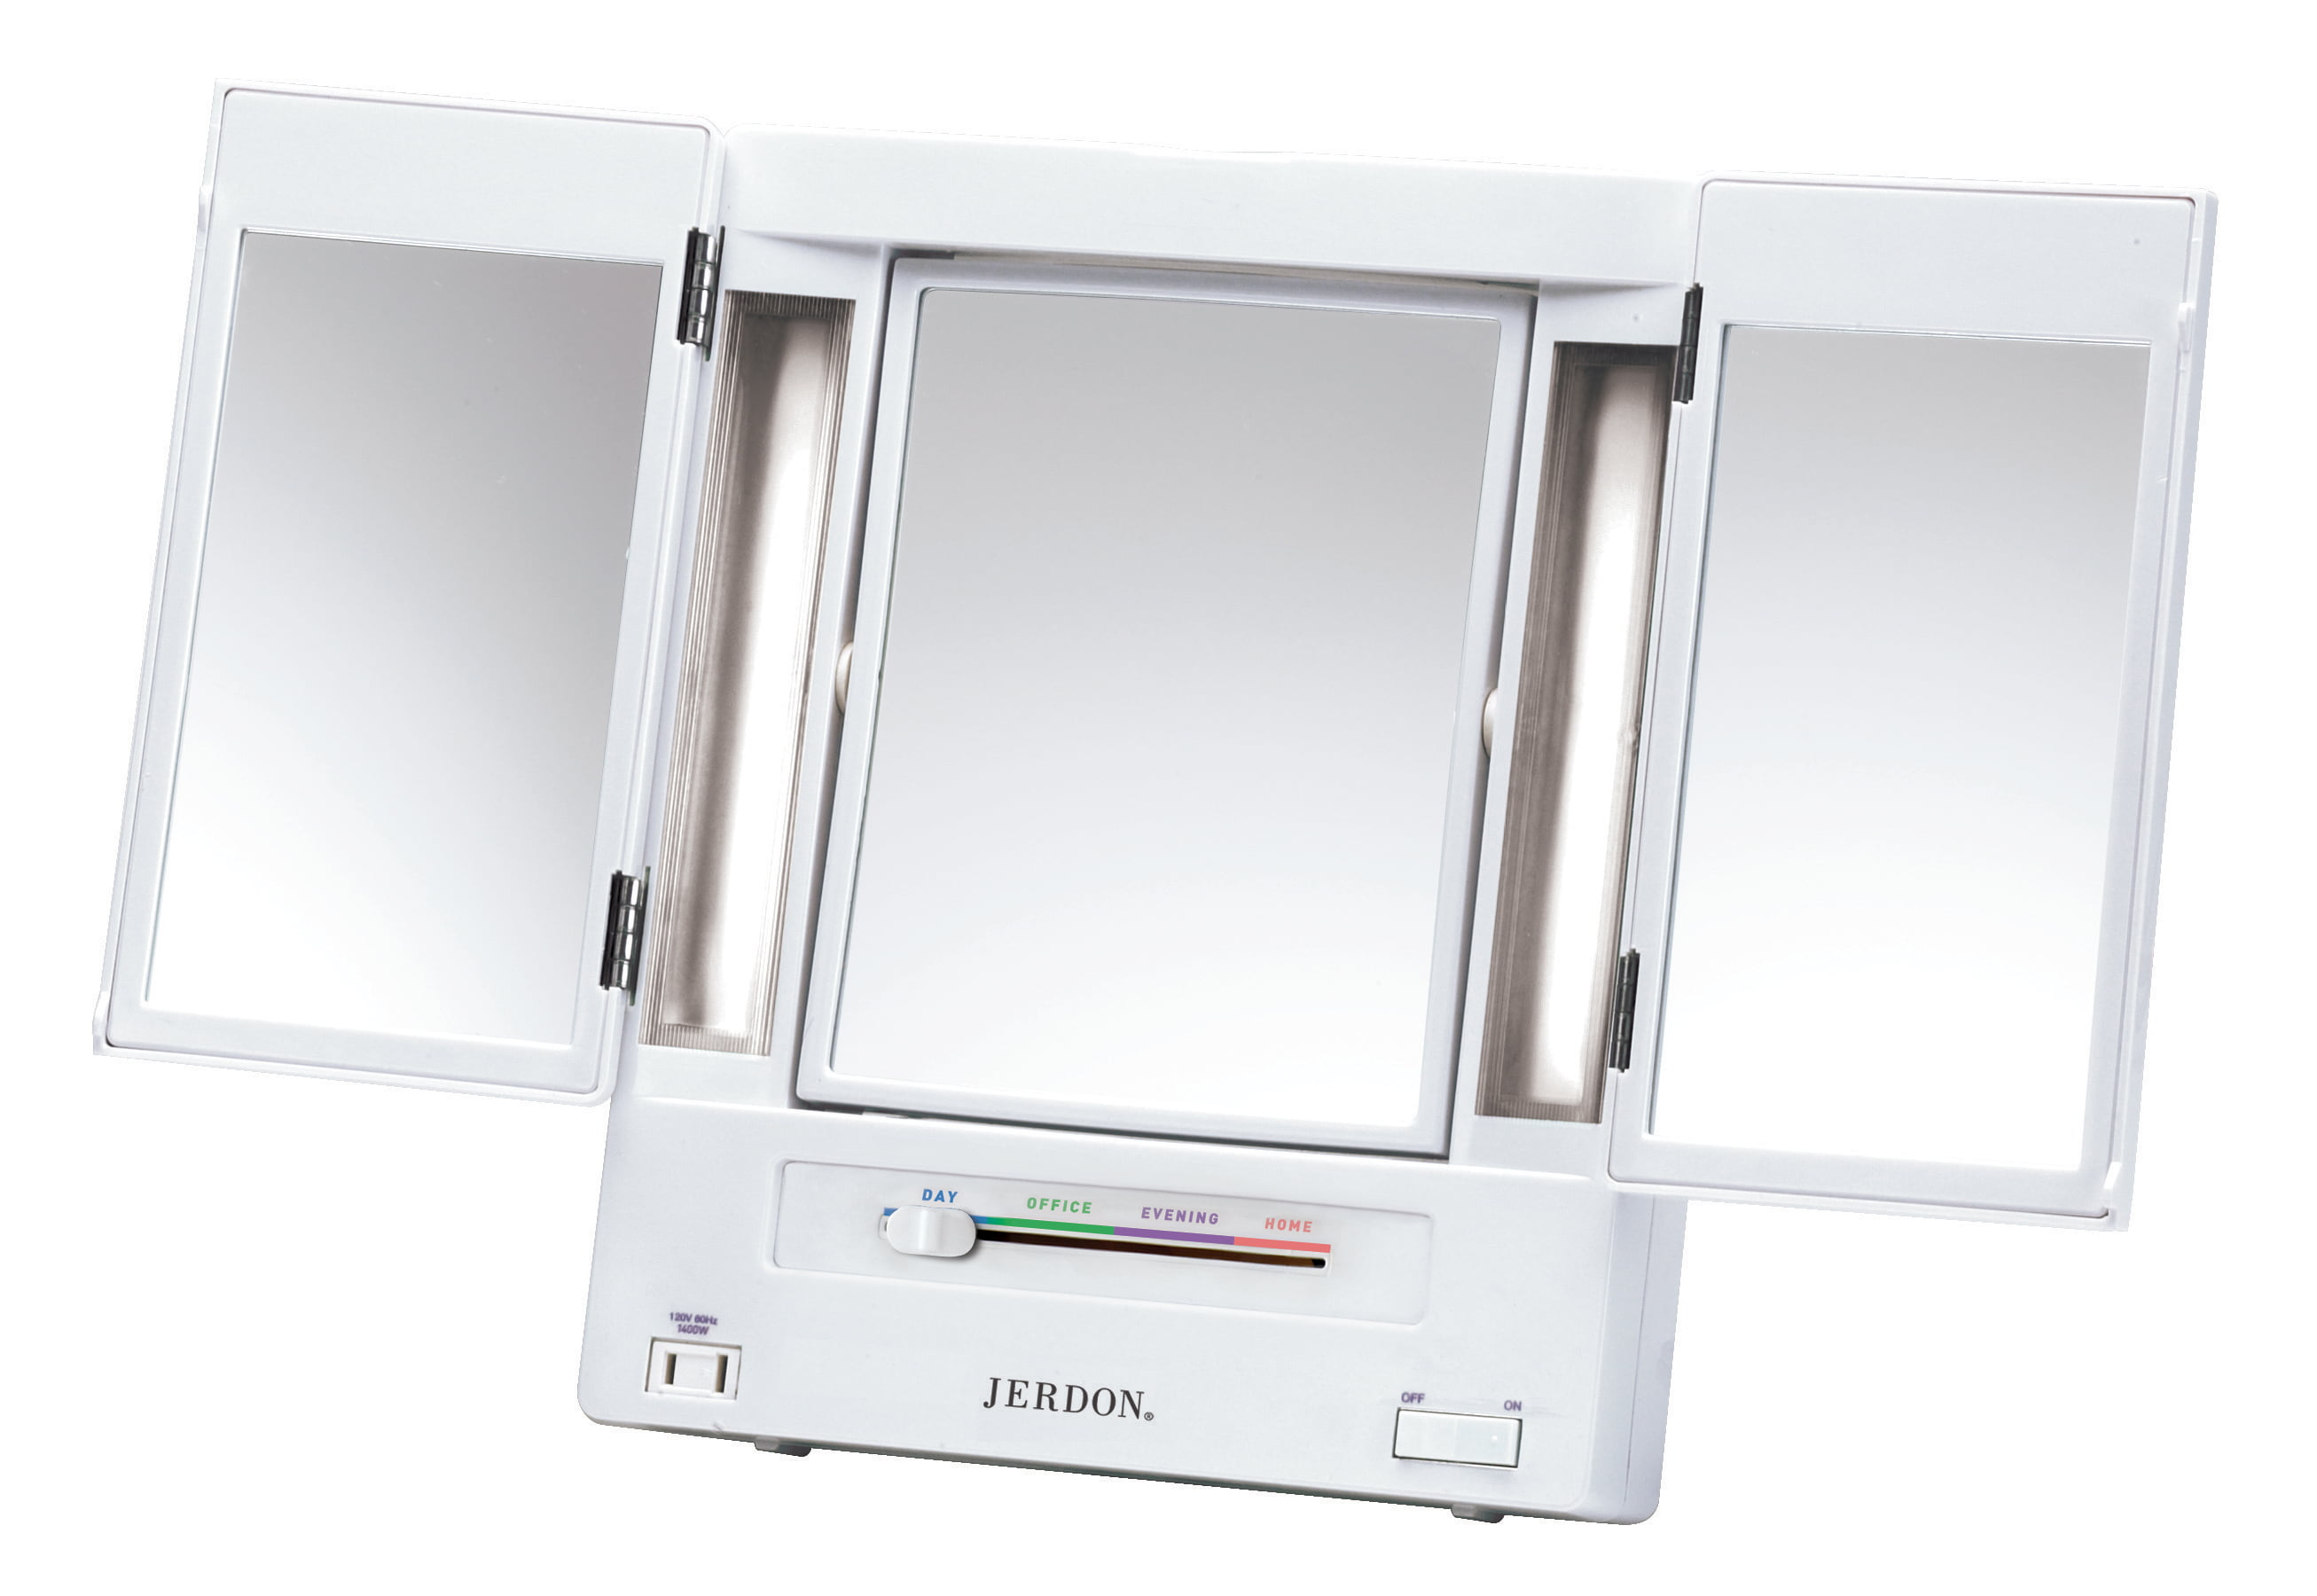 50 Value Jerdon Style Makeup Mirror In White 5x Magnification With Tabletop Tri Fold 2 Sided Light 12 75 X 3 75 X 10 75 Walmart Com Walmart Com